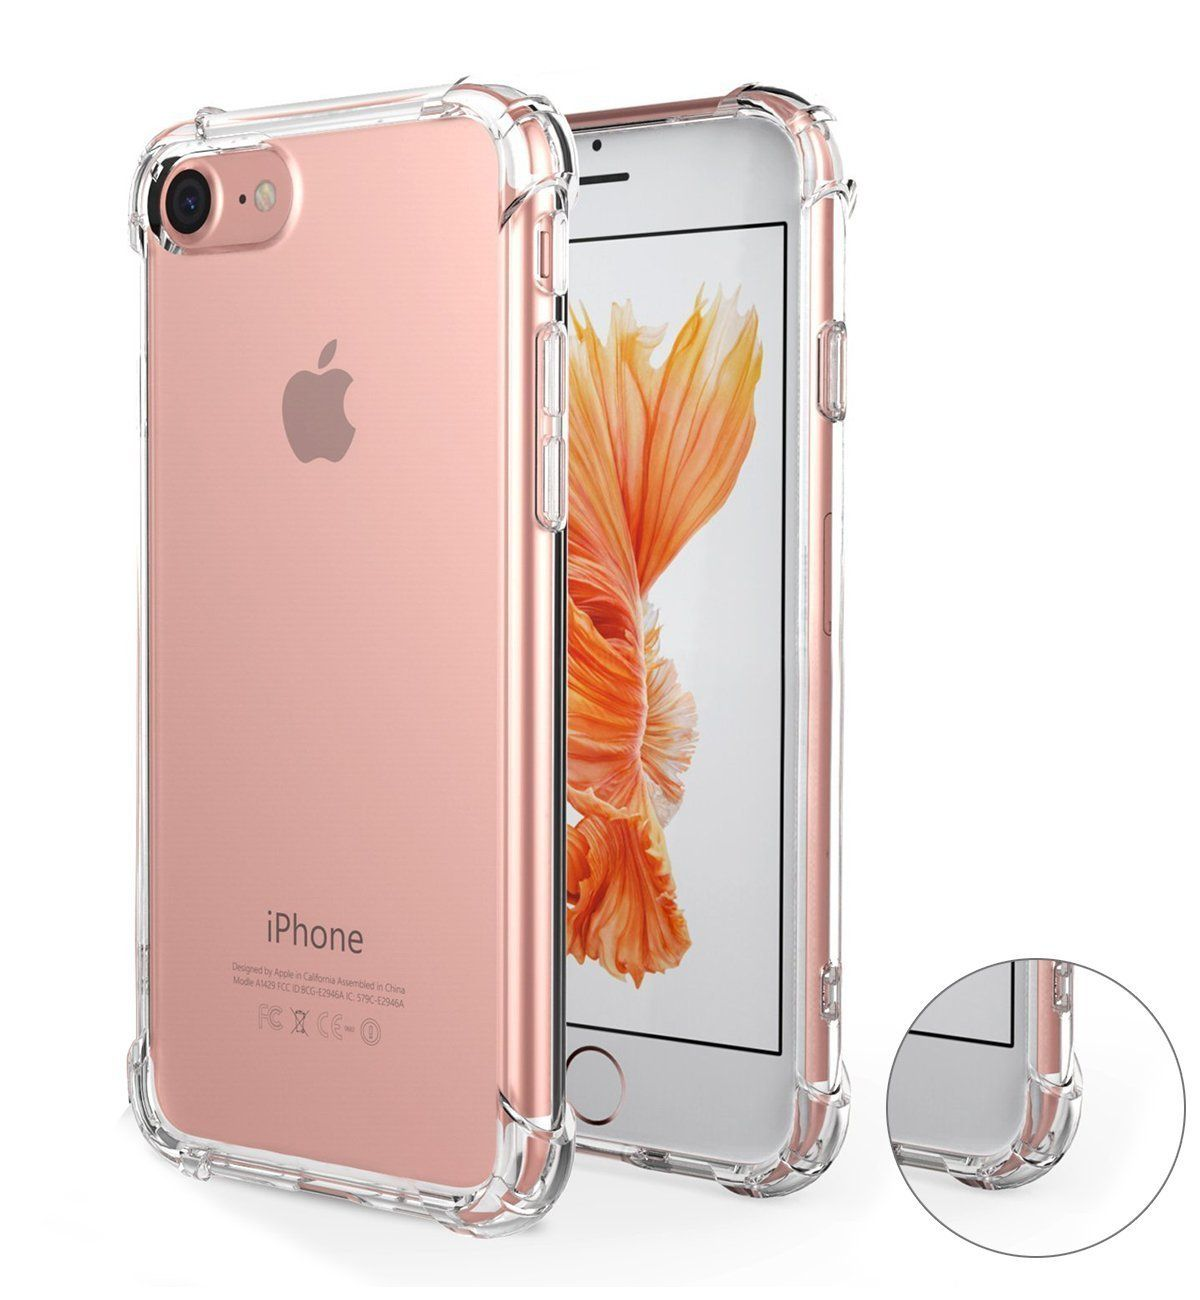 Iphone 7 Case Iphone 8 Case Bwealth Apple Iphone 7 8 Cover Crystal Clear Shock Absorption Technology Corner Bumpers S Iphone Bumper Case Iphone Iphone Bumper